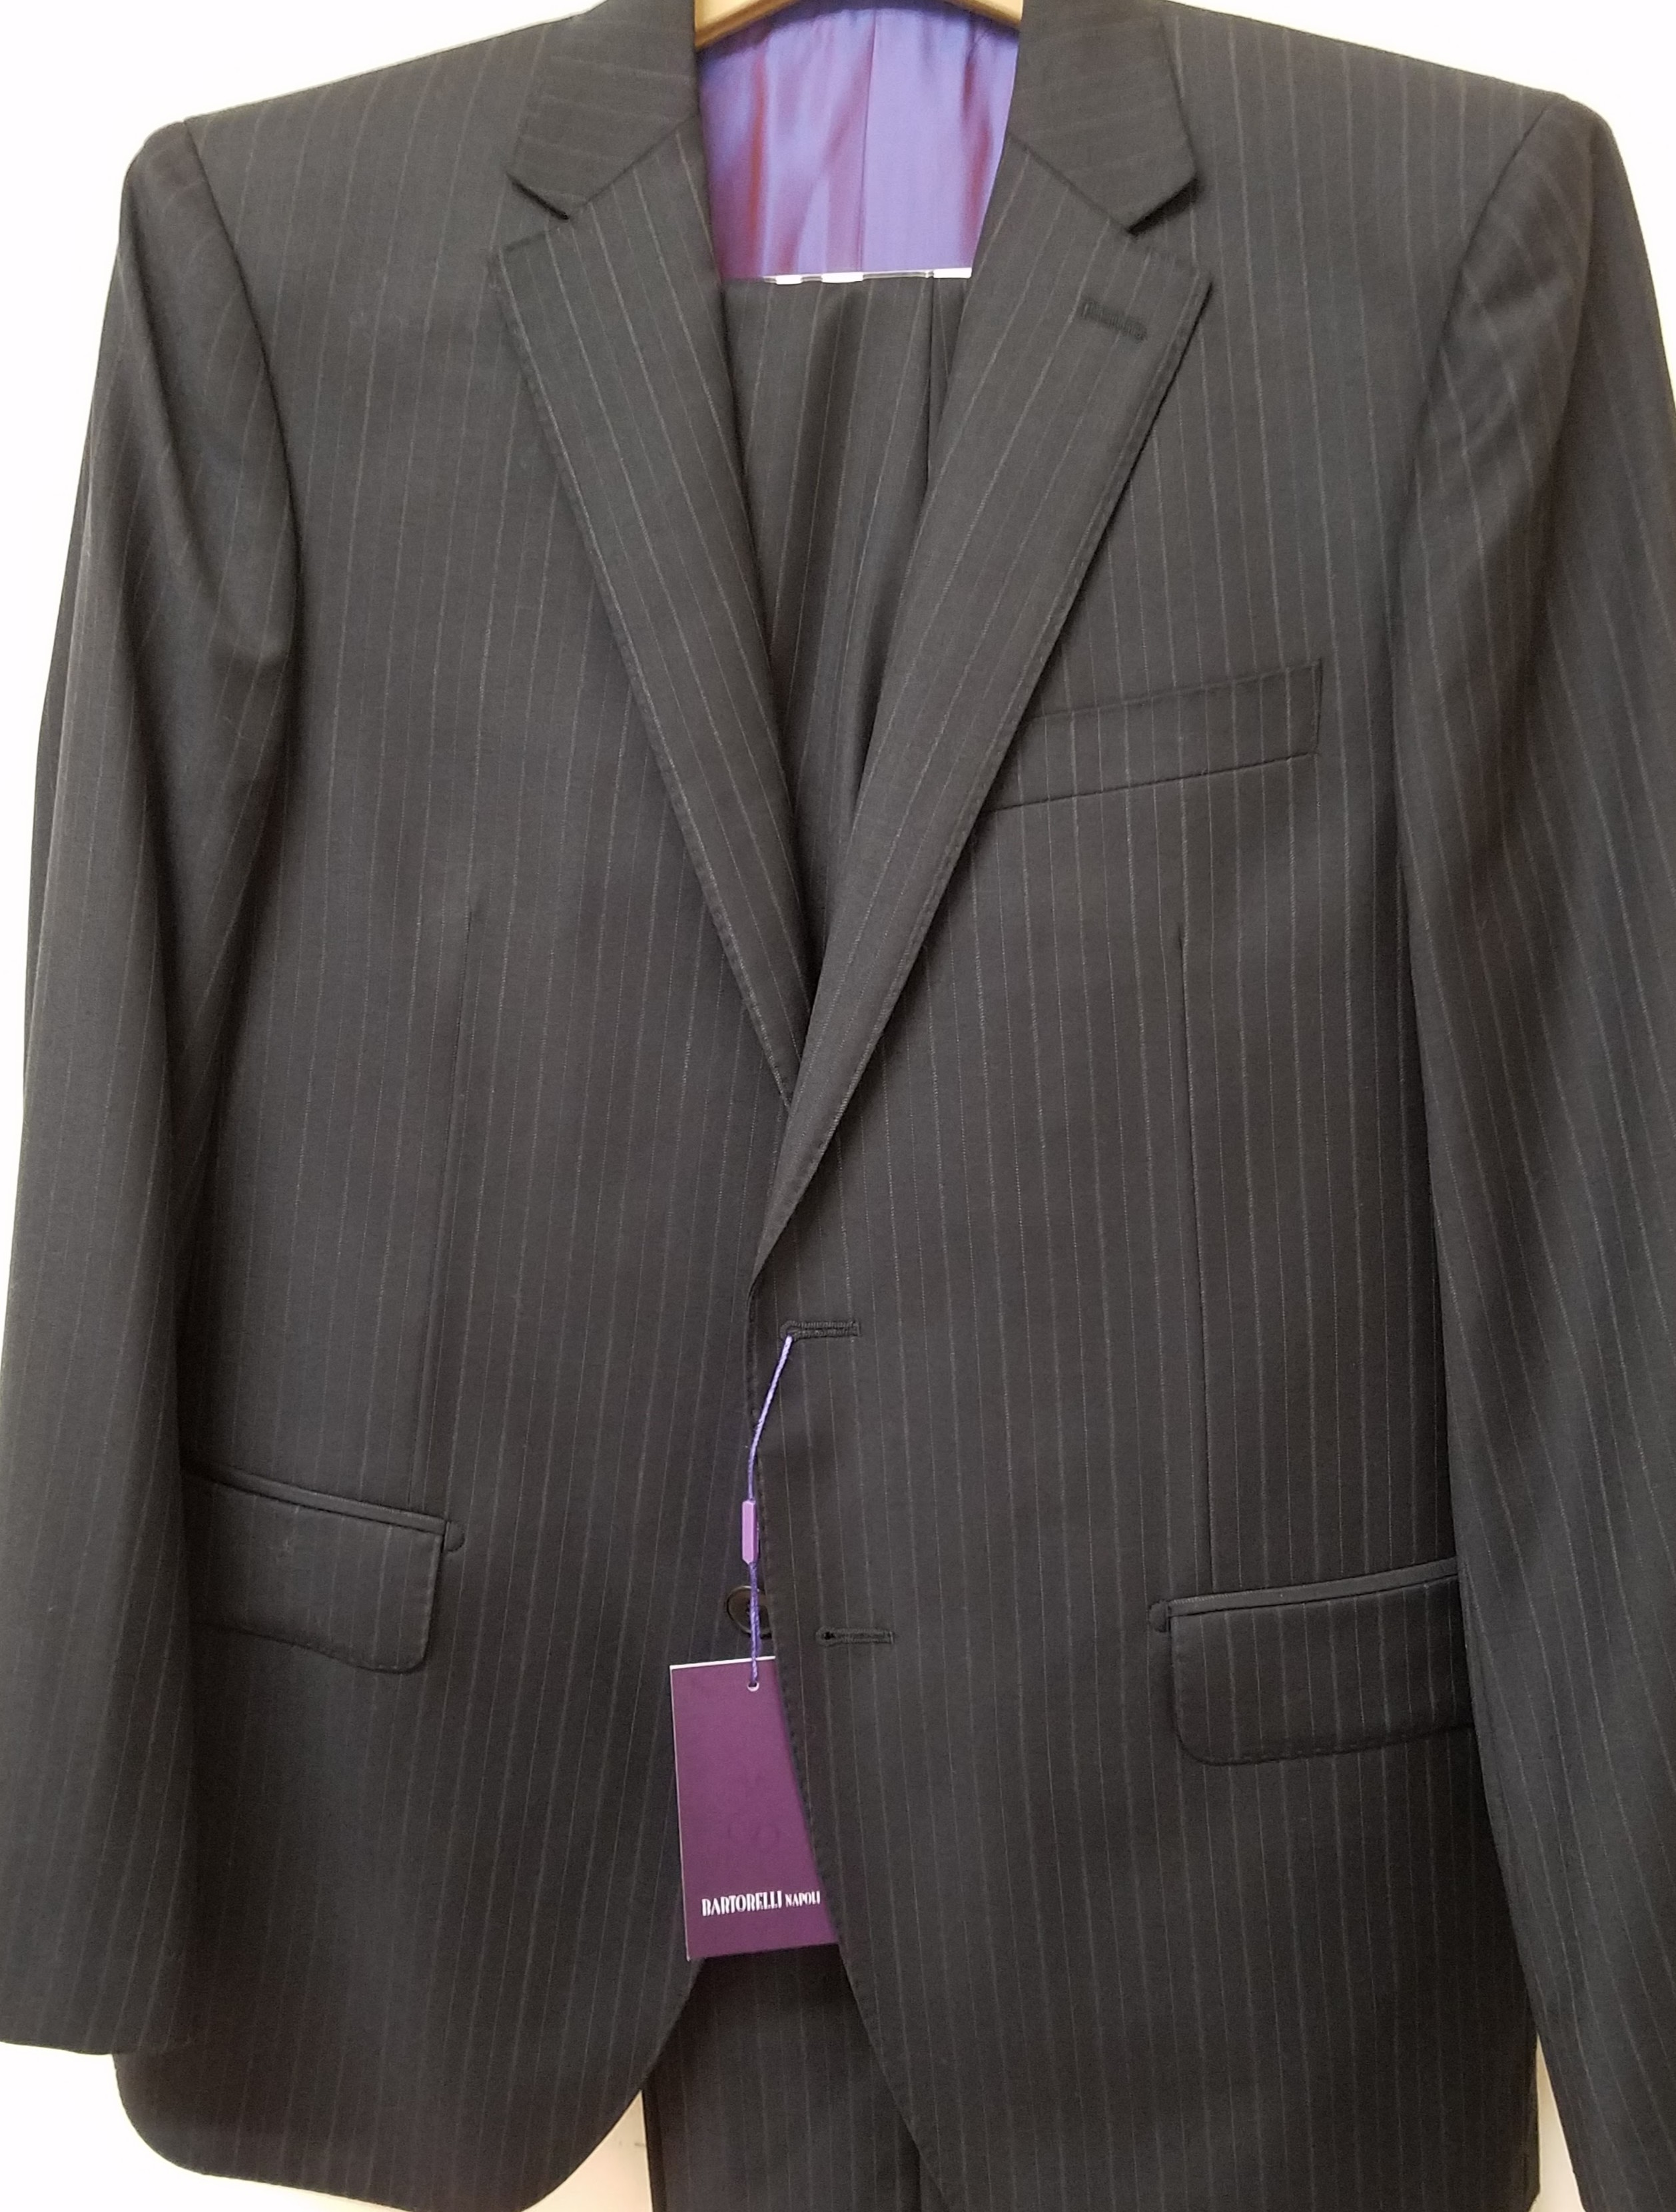 mobobs's photos in Multiple Beautiful Bartorelli Napoli Suits -NWT- Updated Daily